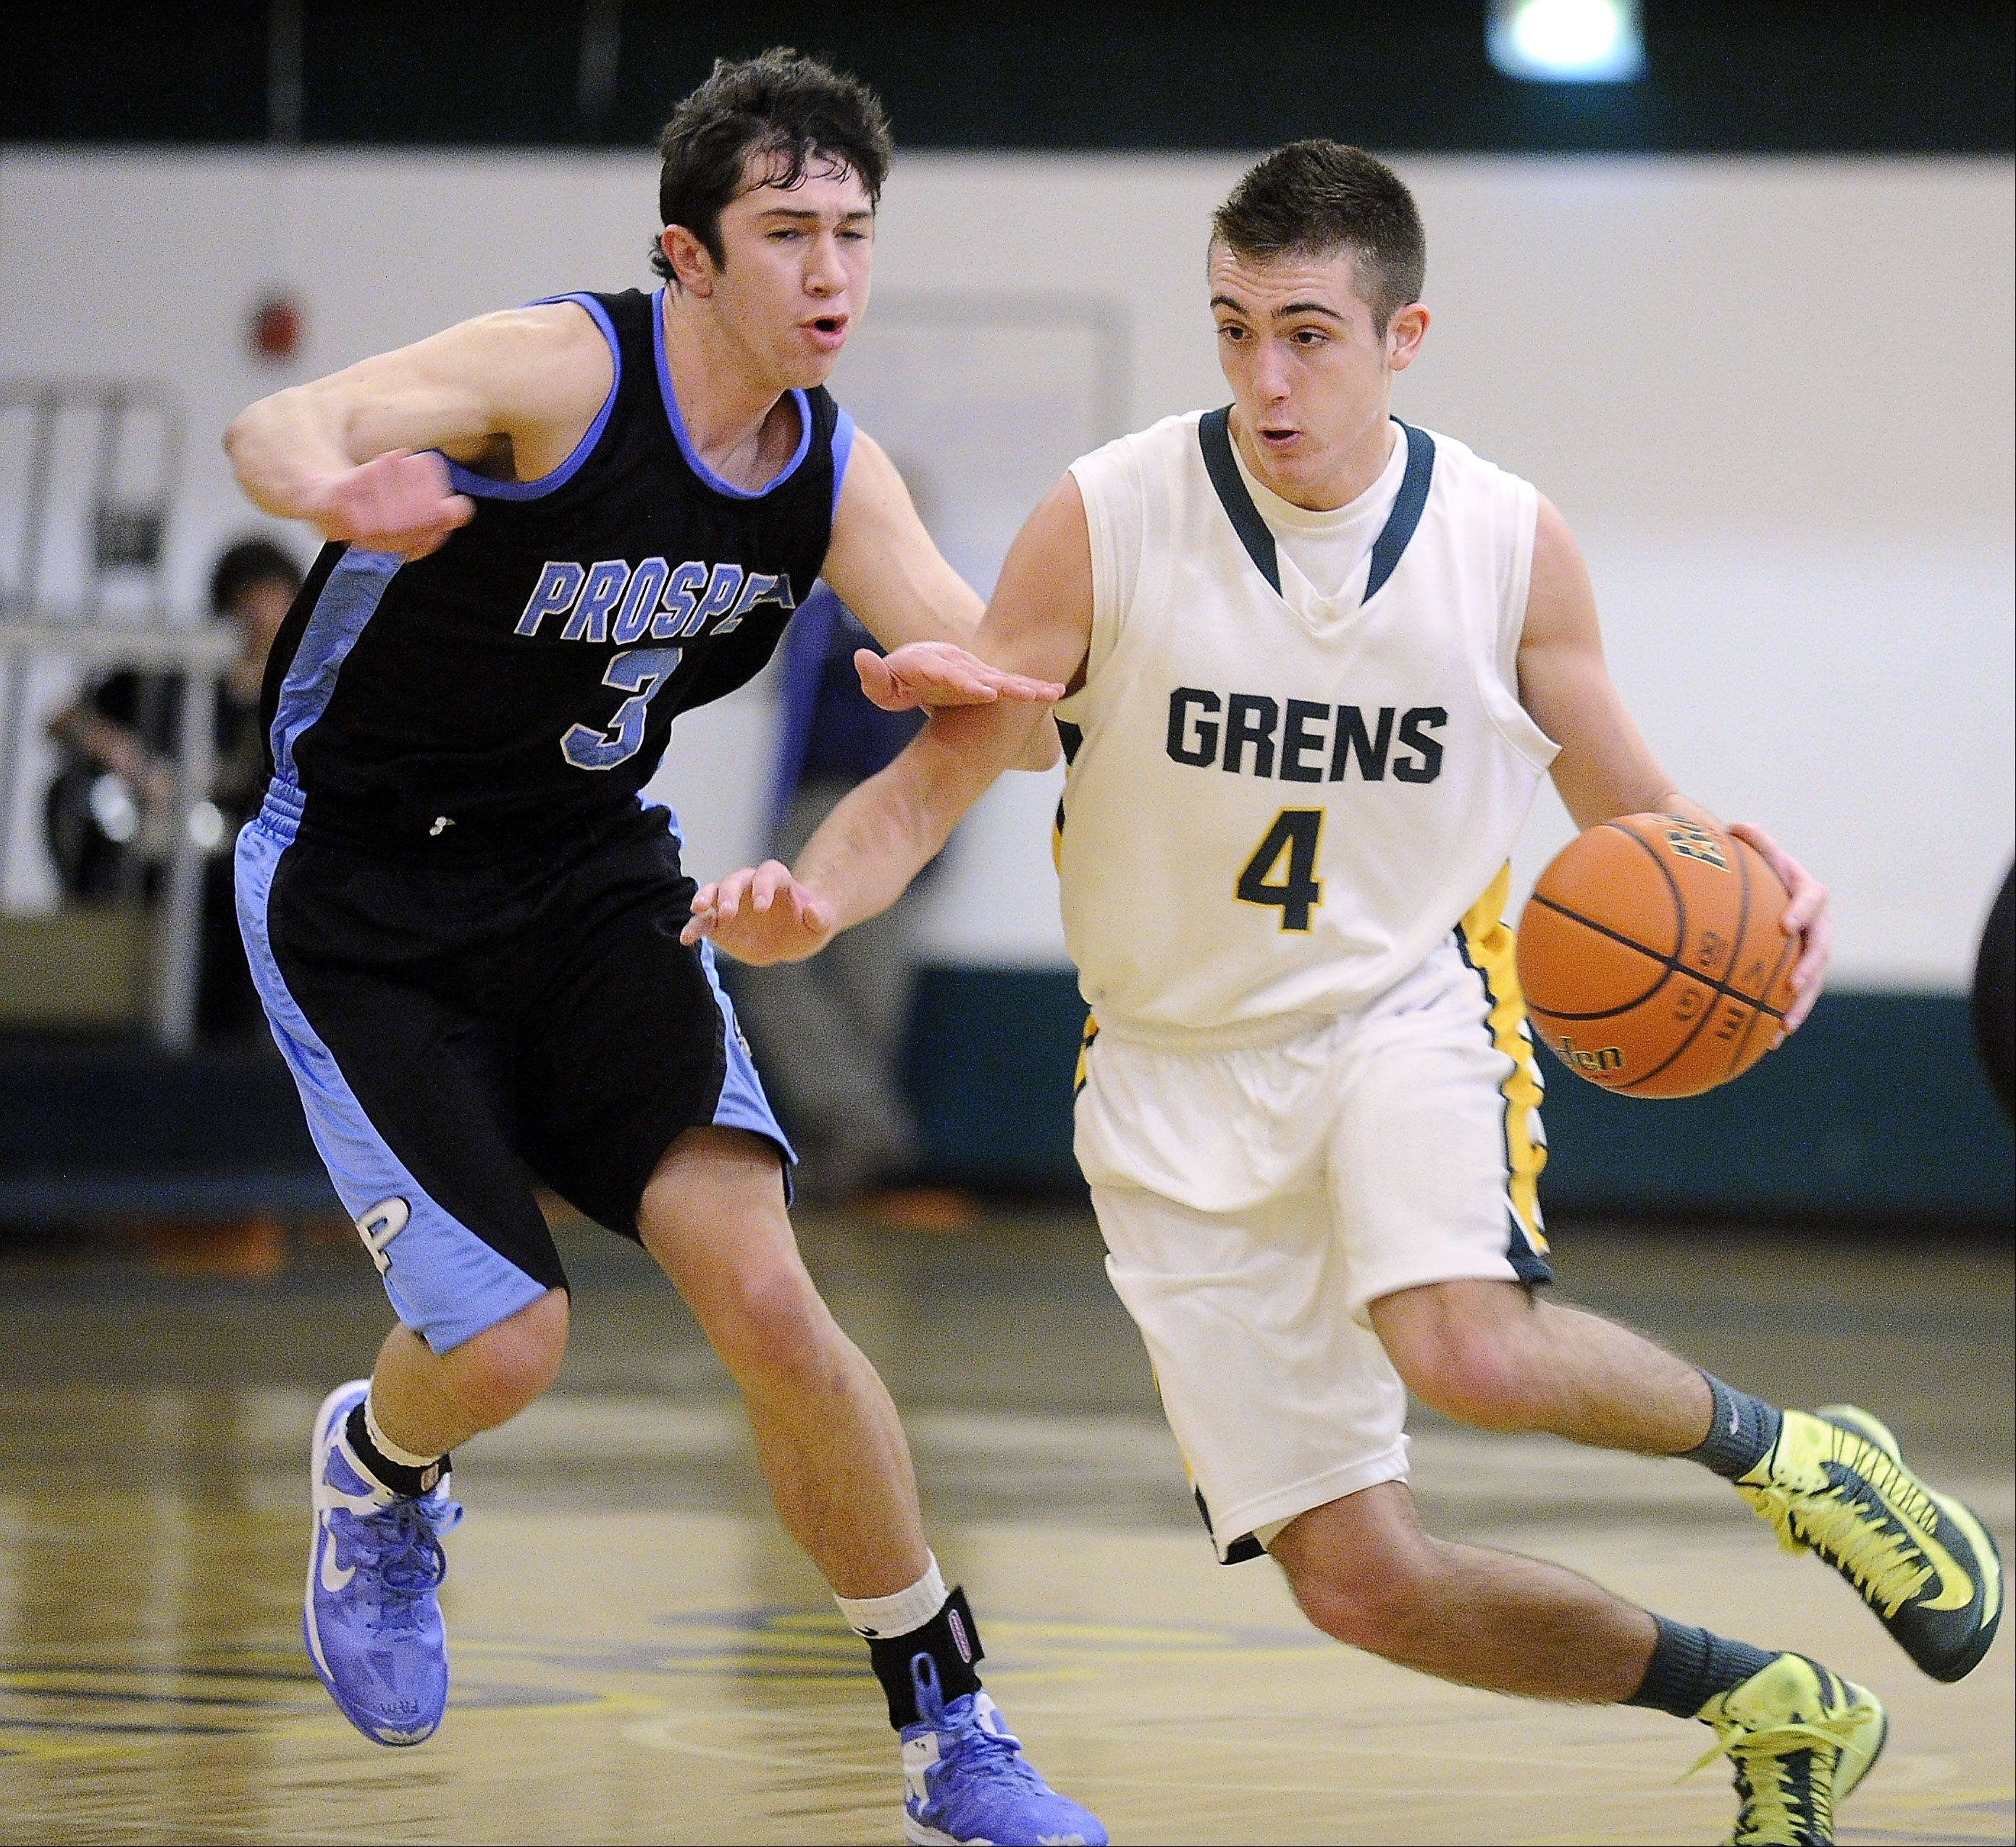 Elk Grove�s Austin Amann tries to dribble-drive around Prospect�s Bobby Frasco en route to the basket at Elk Grove.